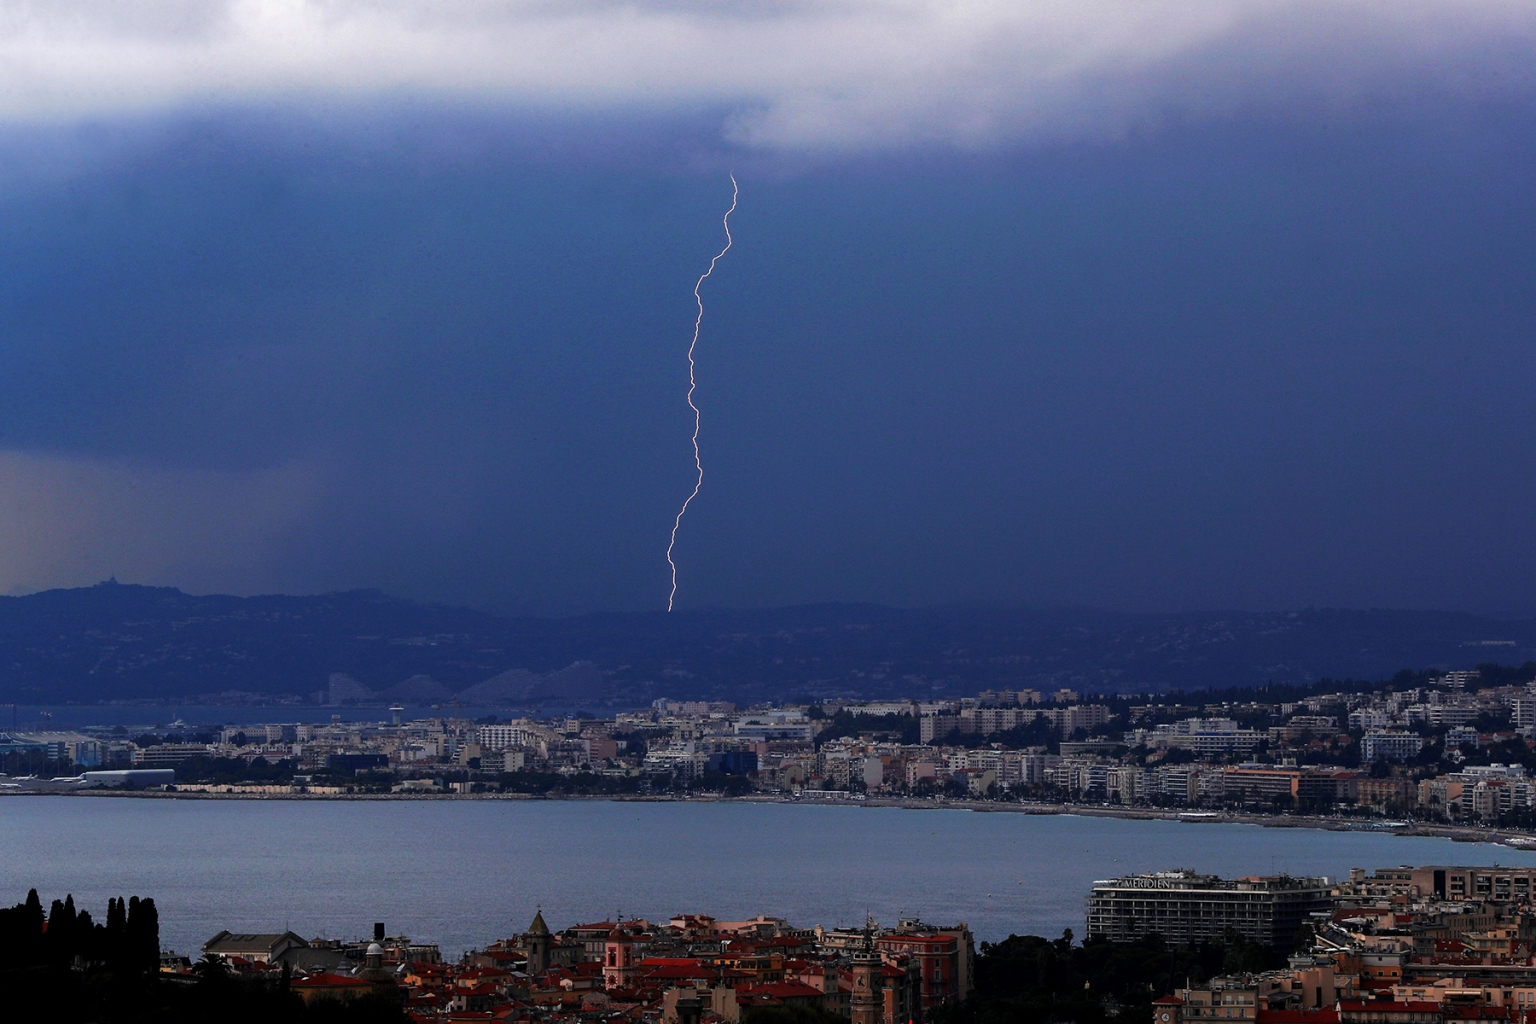 A flash of lightning strikes above the Baie des Anges in the French riviera city of Nice, southeastern France, on Sept. 6. VALERY HACHE/AFP/Getty Images